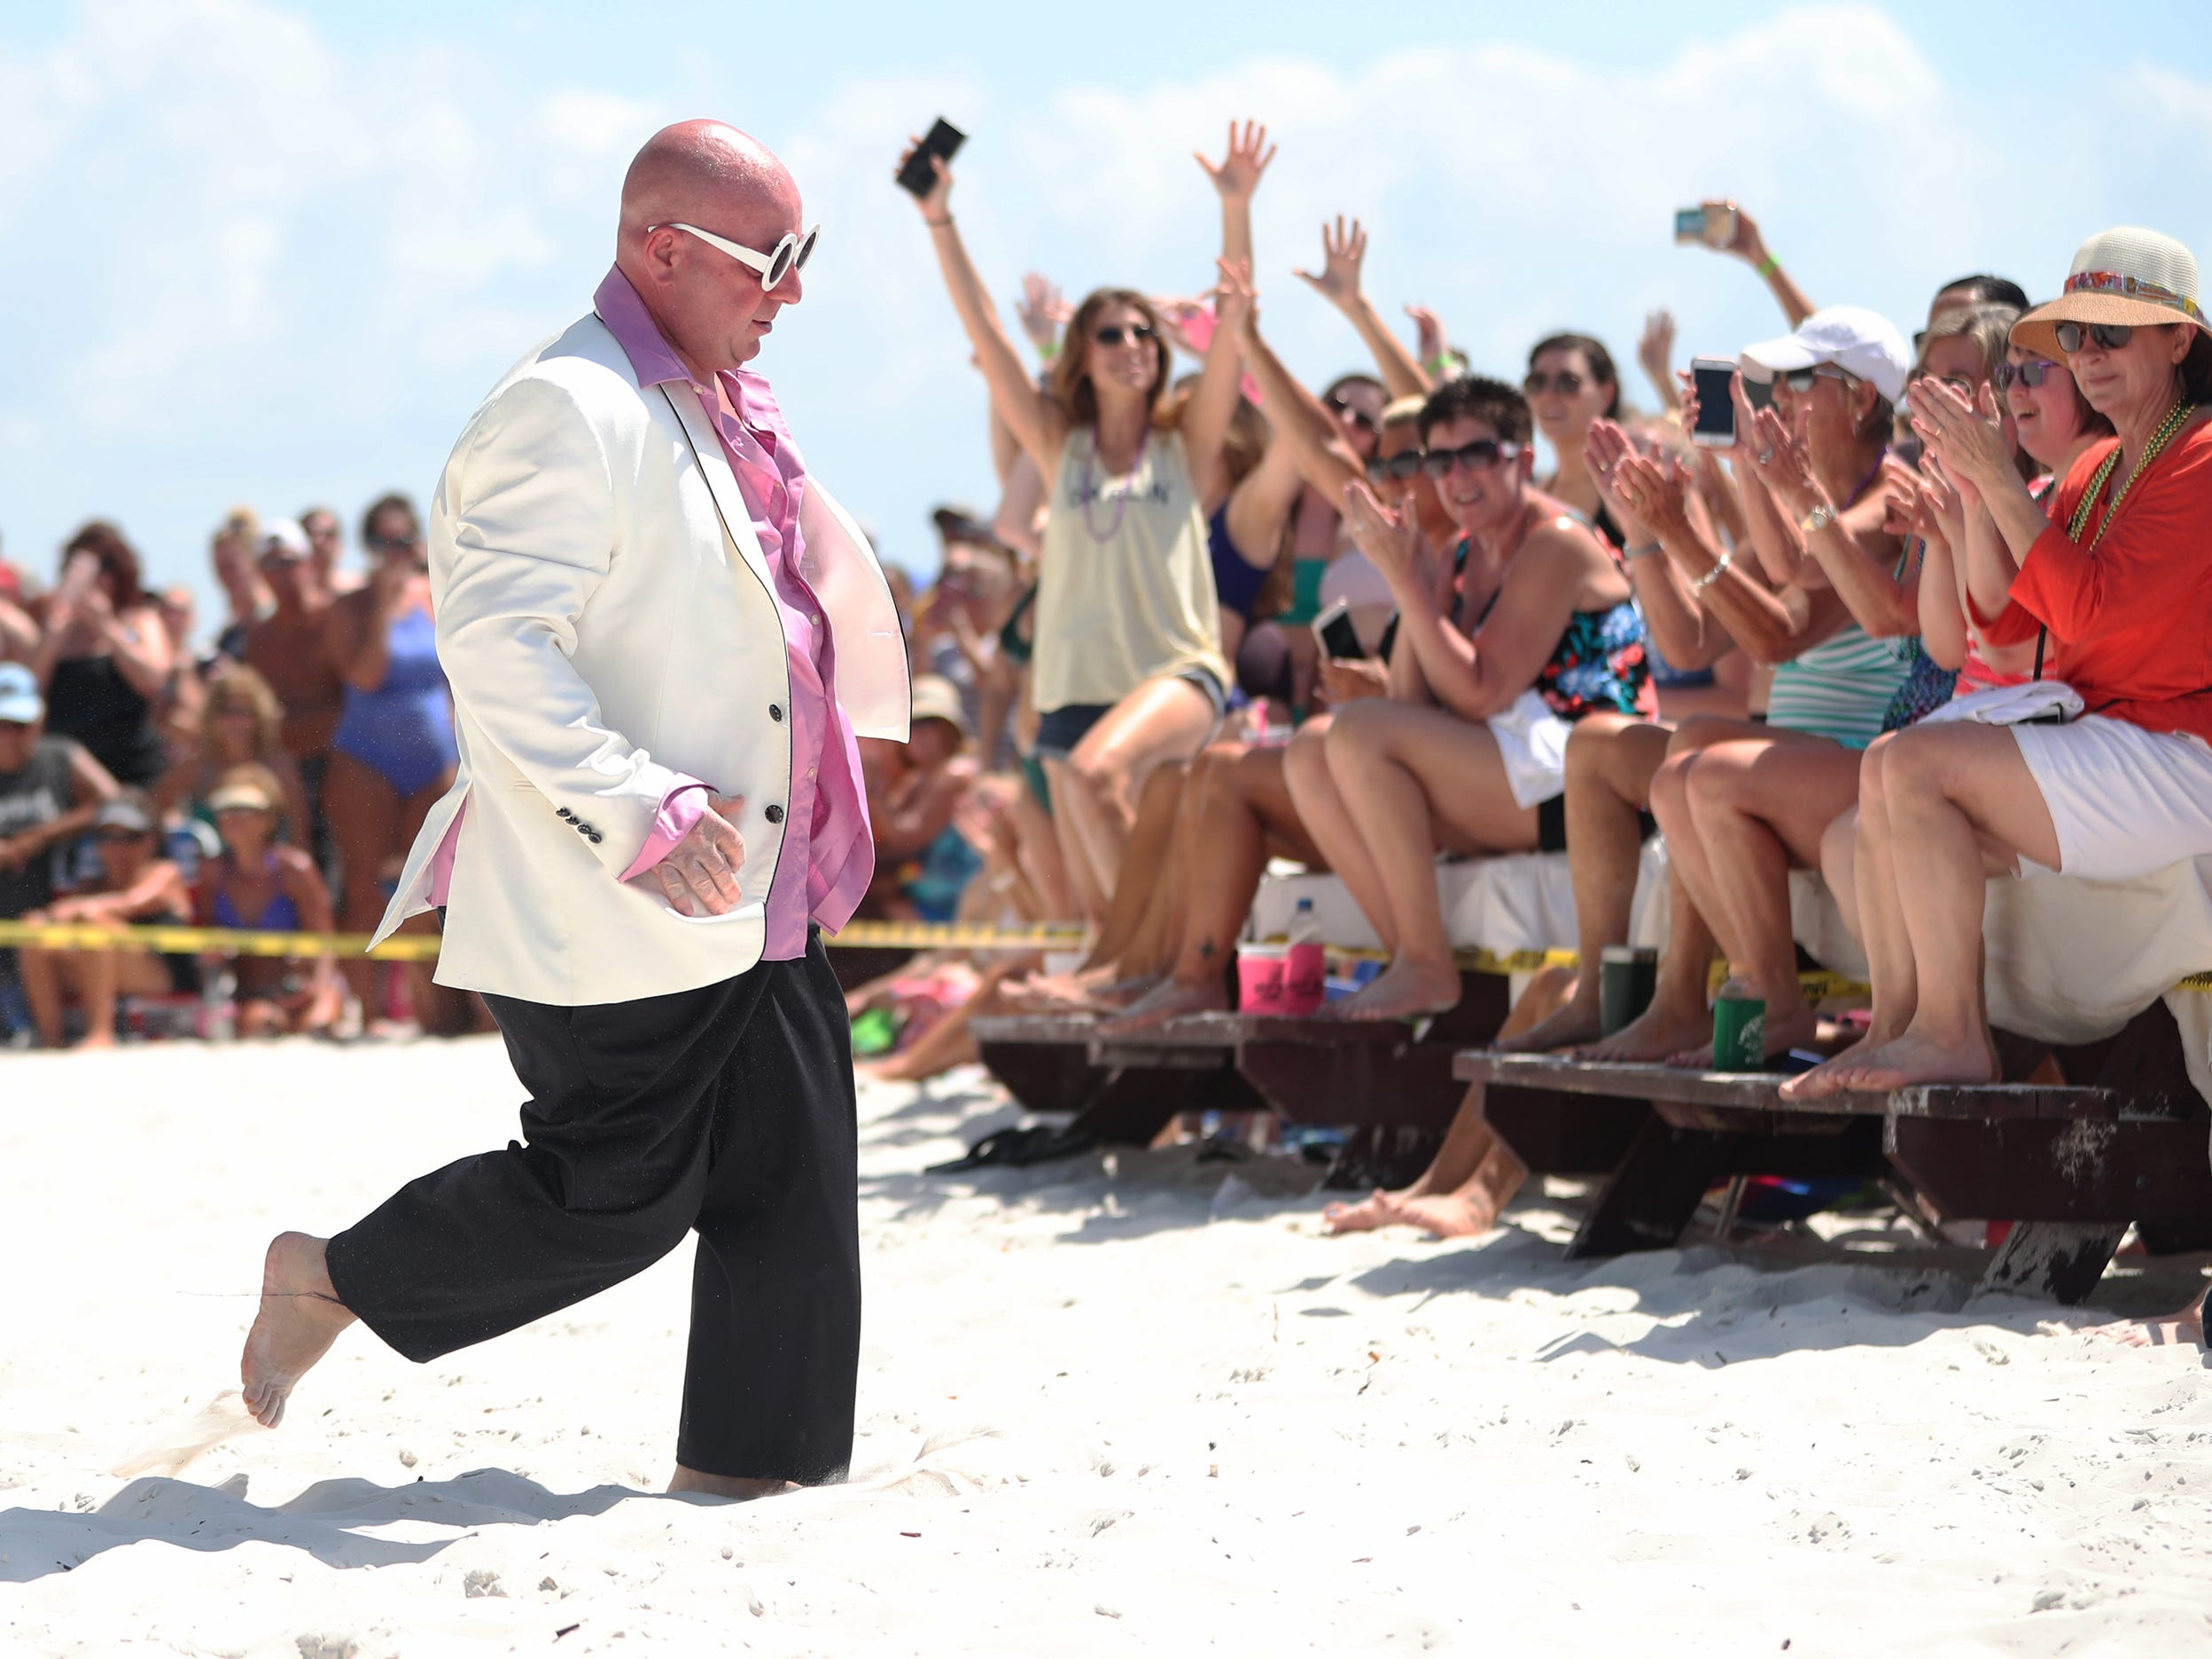 The Cincinnati Firefighters continued their effort on Sunday to raise money for the local ARABA Shriners organization (a non-profit group dedicated to aiding ailing children) by performing for donations at the Lani Kai Island Resort on Fort Myers Beach. More than 30 firemen and EMTs danced with audience volunteers to popular songs. The shows run through March 21.